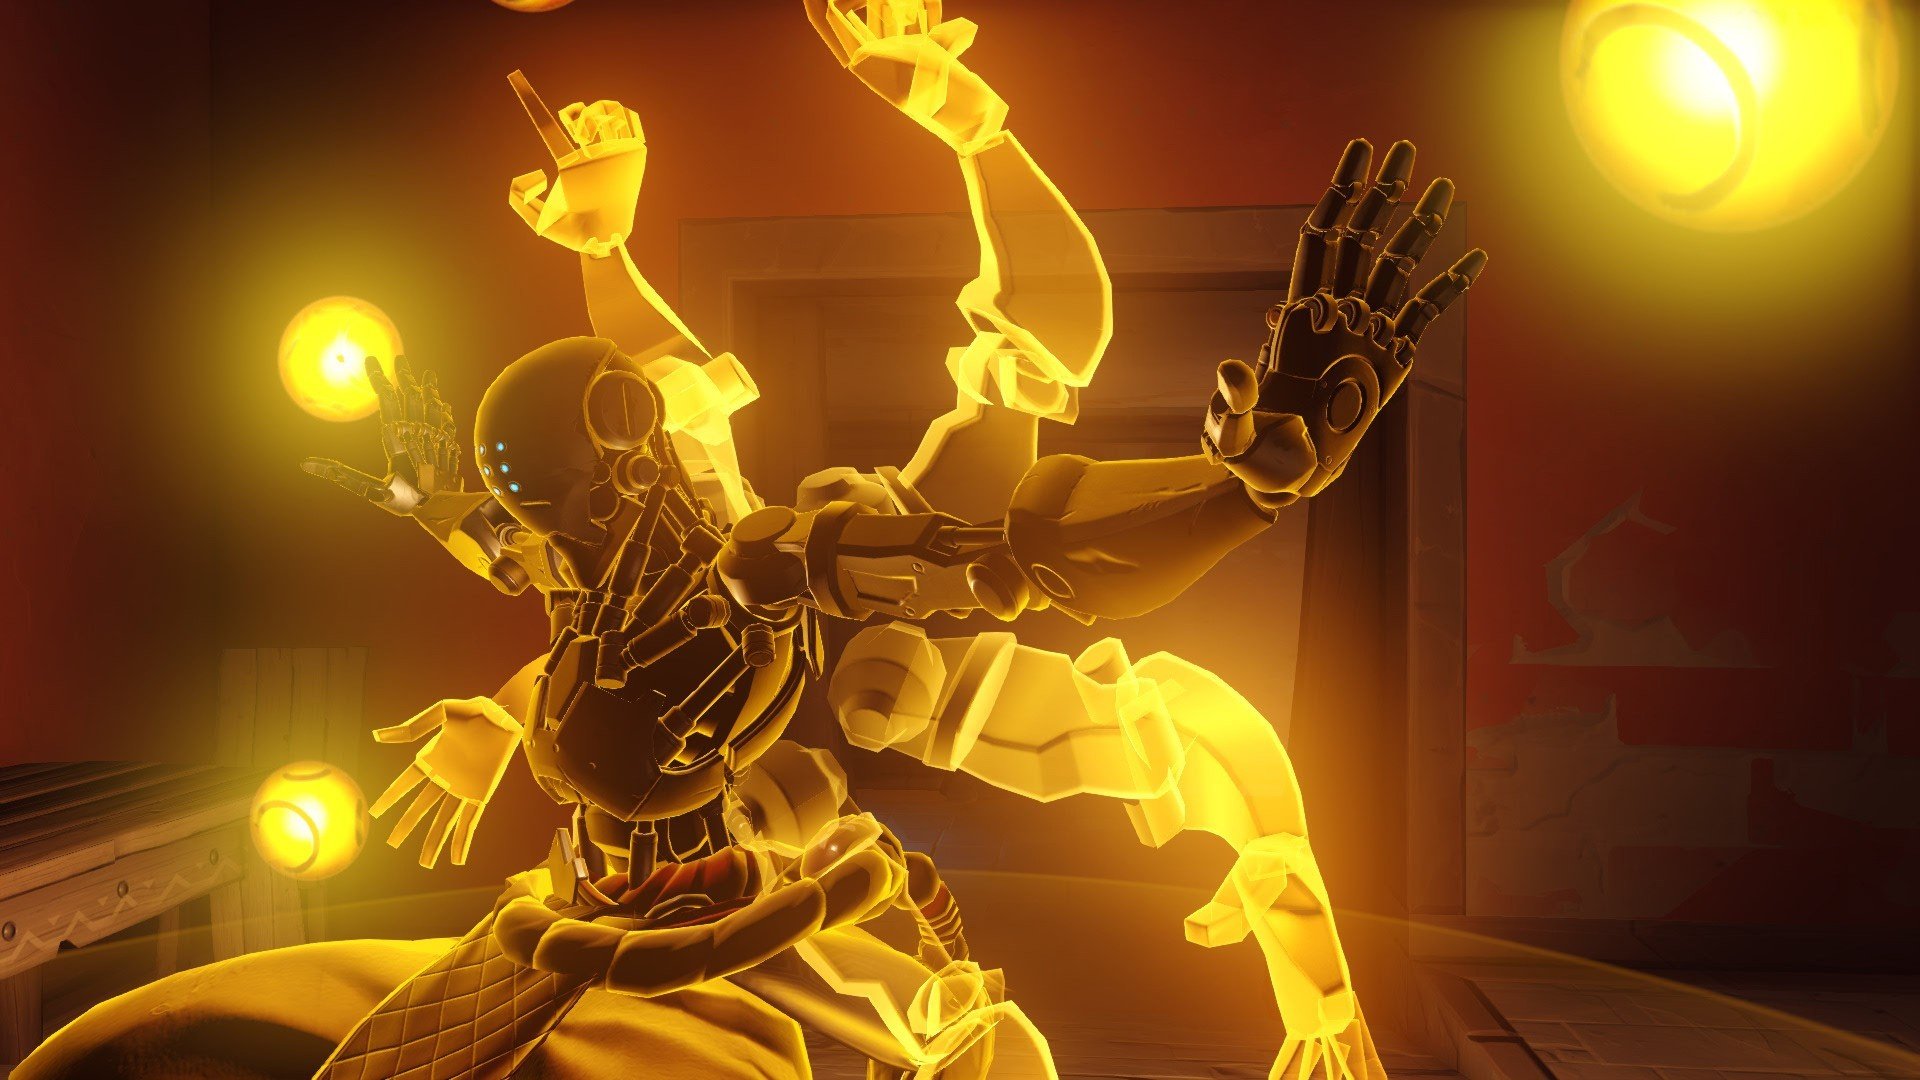 1920x1080 zenyatta-wallpapers-best-hd